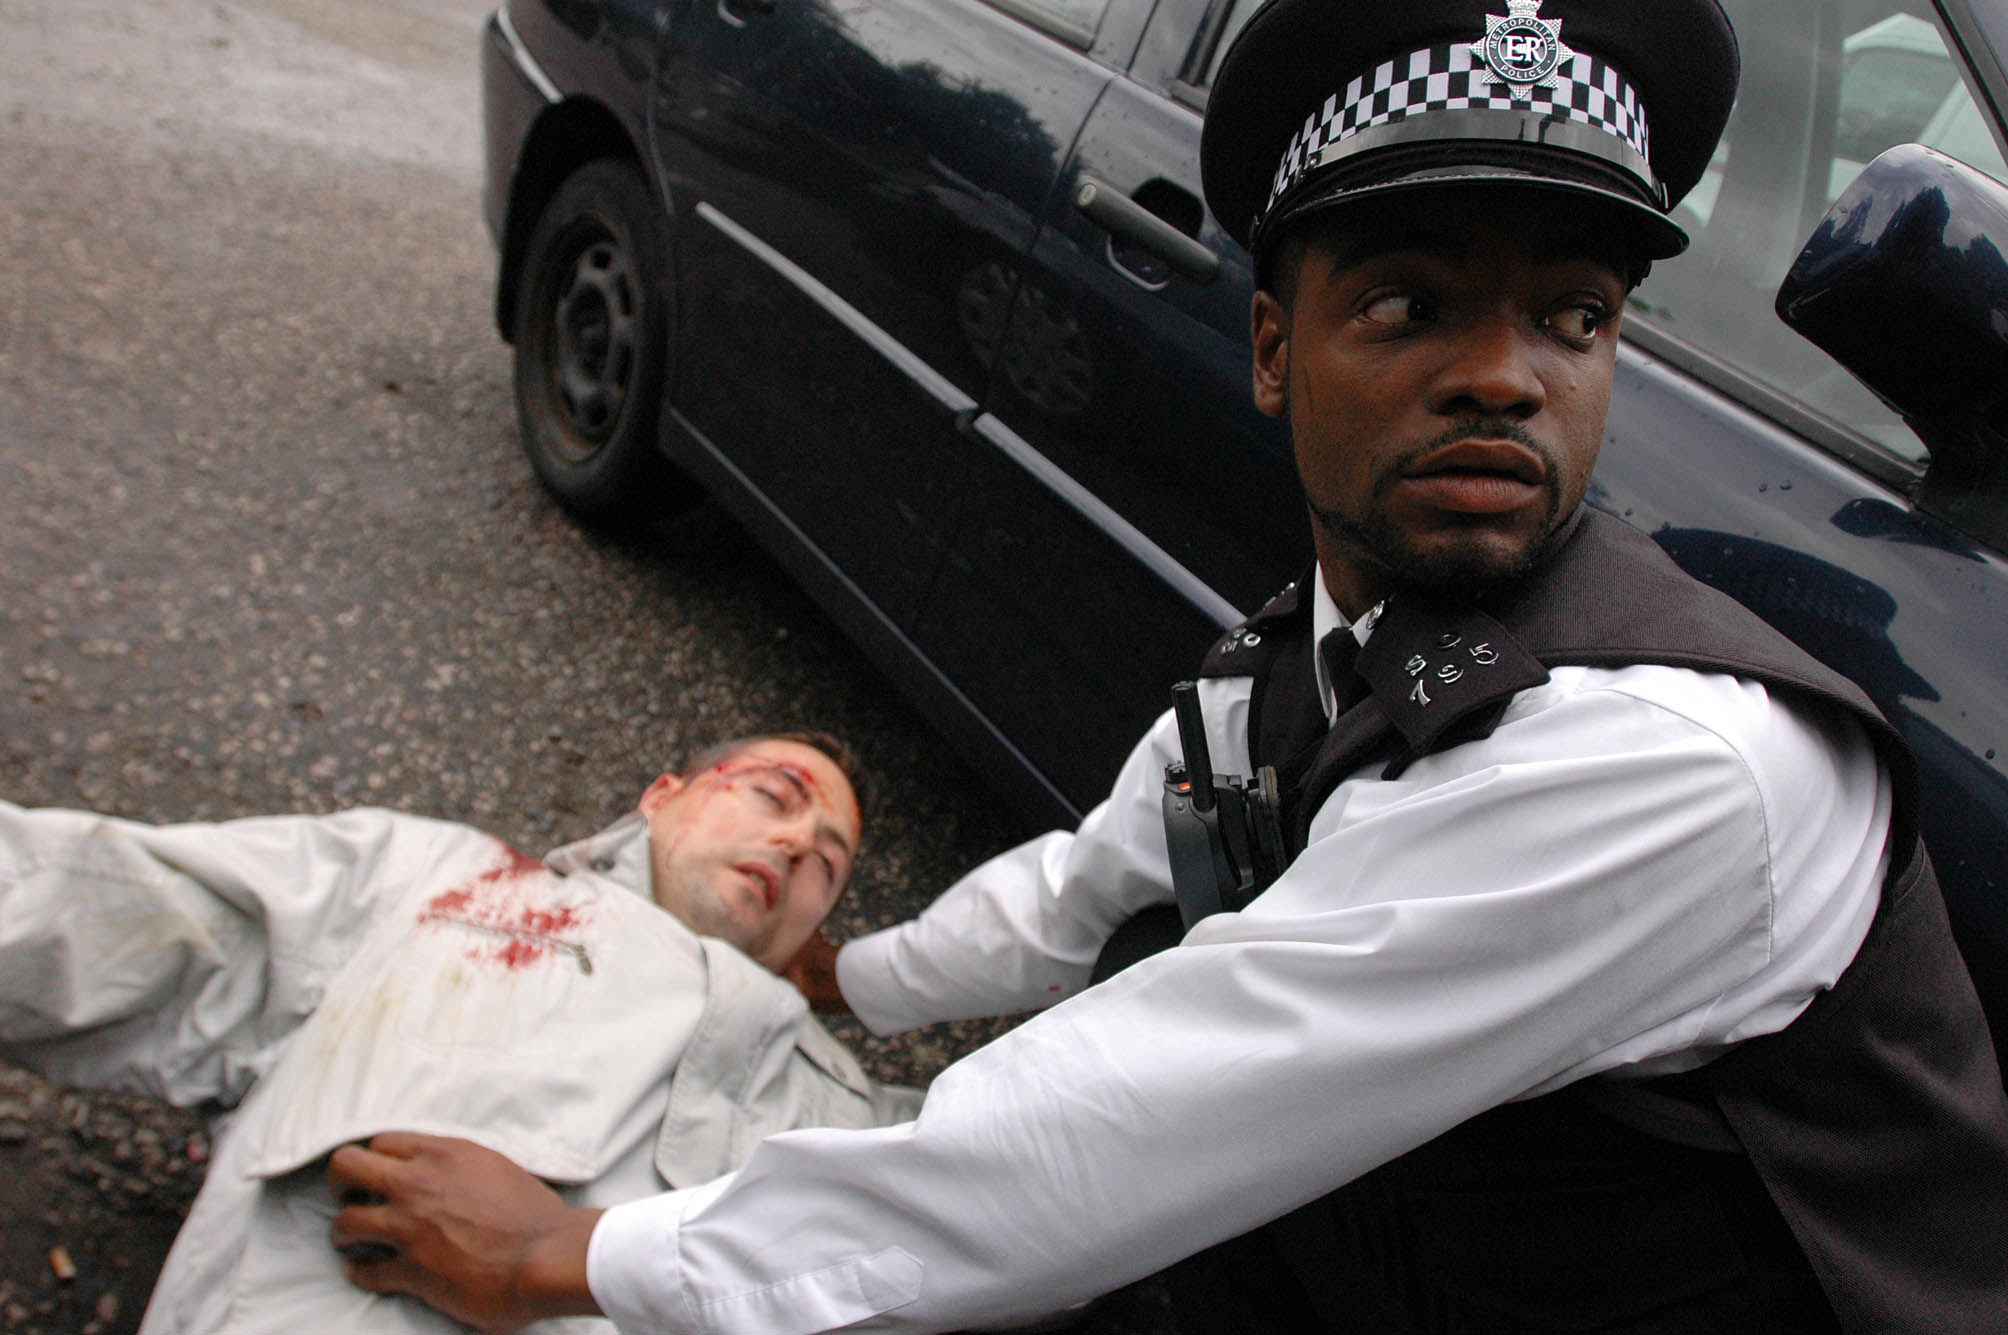 It's Pc Benjamin Gayle's first day